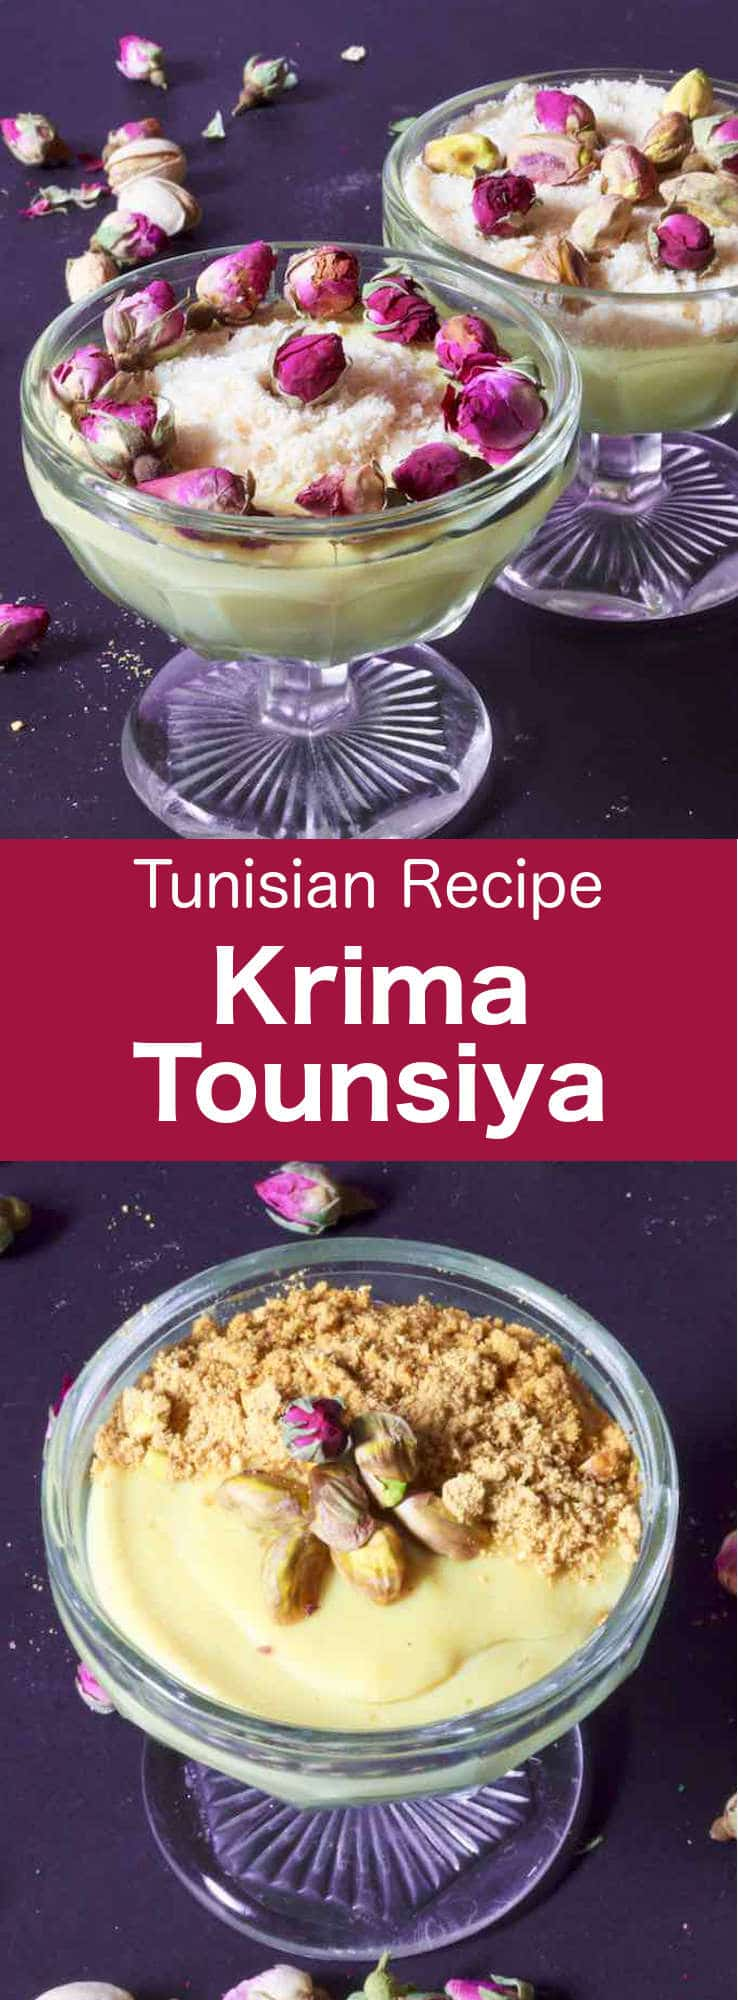 Krima tounsiya is a deliciously creamy custard-type Tunisian dessert, flavored with rose, geranium, or orange flower water, and often elaborately decorated with rosebuds, silver dragées, and dried fruits, plus ground and whole pistachios, hazelnuts, and almonds. #Tunisia #Tunisian #TunisianCuisine #TunisianRecipe #NorthAfricanCuisine #NorthAfricanRecipe #NorthAfrica #Maghreb #MaghrebCuisine #Dessert #TunisianDessert #NorthAfricanDessert #WorldCuisine #196flavors